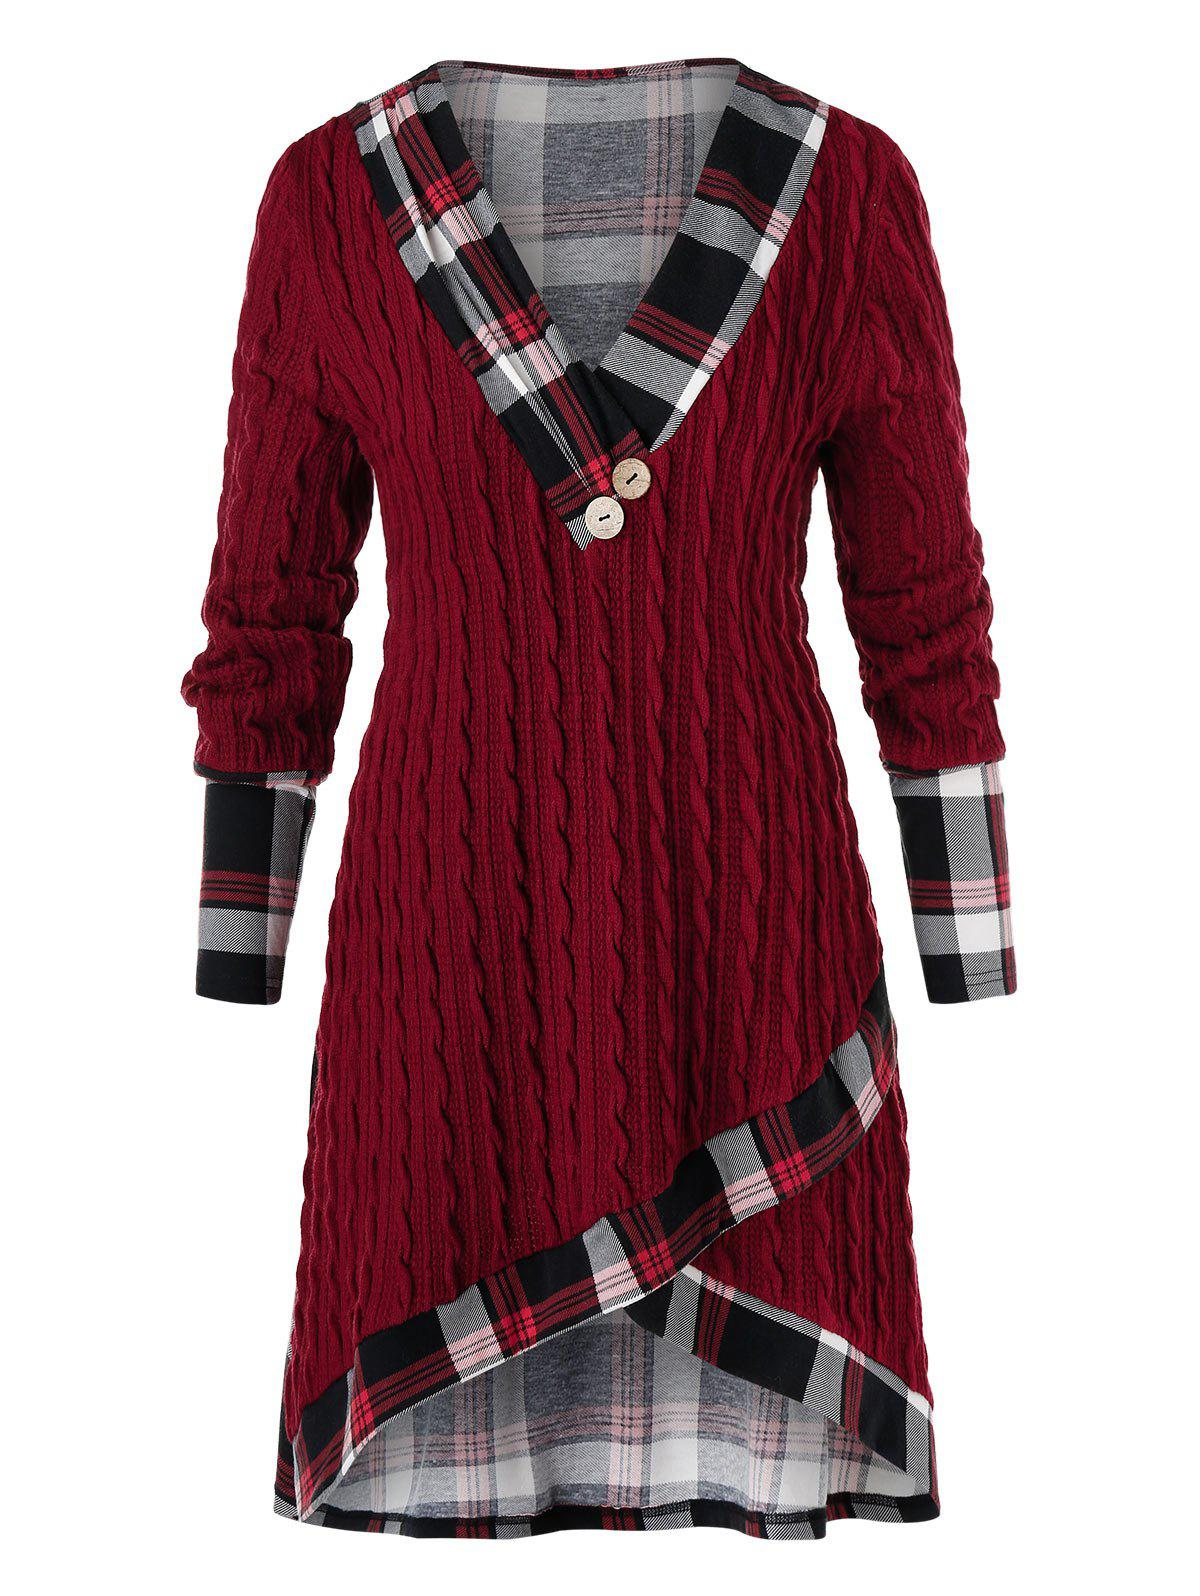 Plus Size Plaid Cable Knit Tulip Sweater - RED WINE 3X